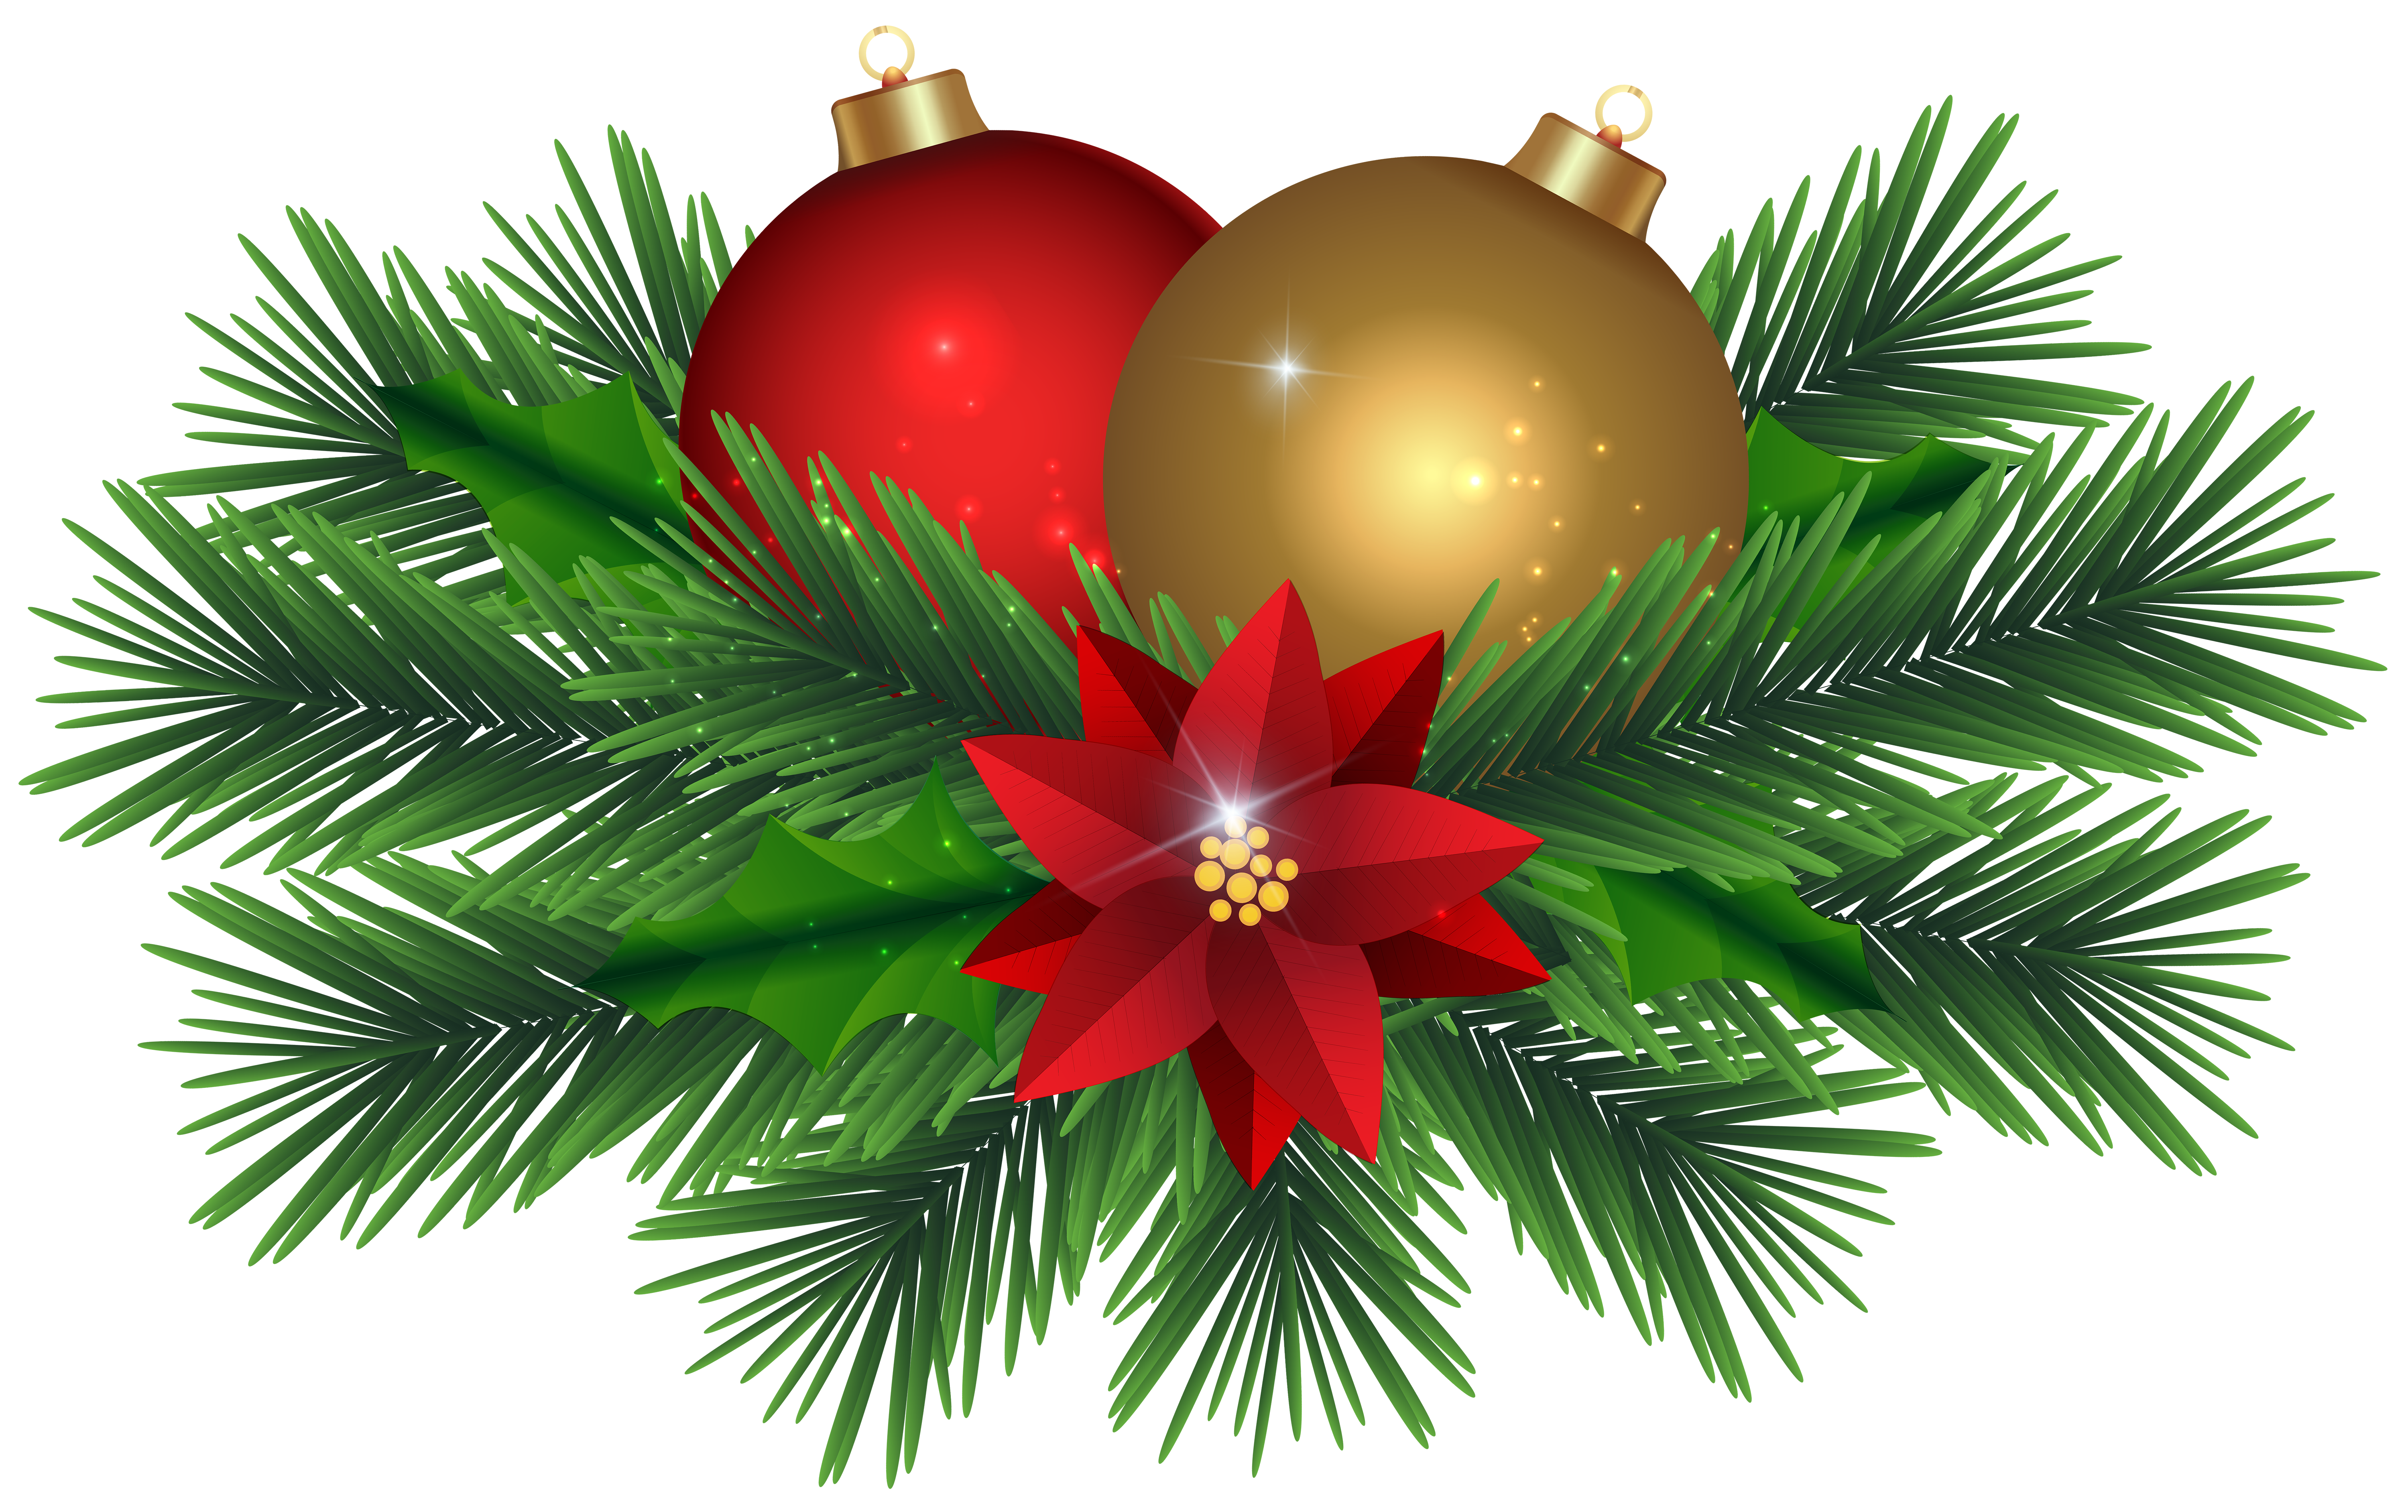 Christmas tree on car clipart graphic freeuse stock Christmas Decor PNG Clip Art Image | Gallery Yopriceville - High ... graphic freeuse stock